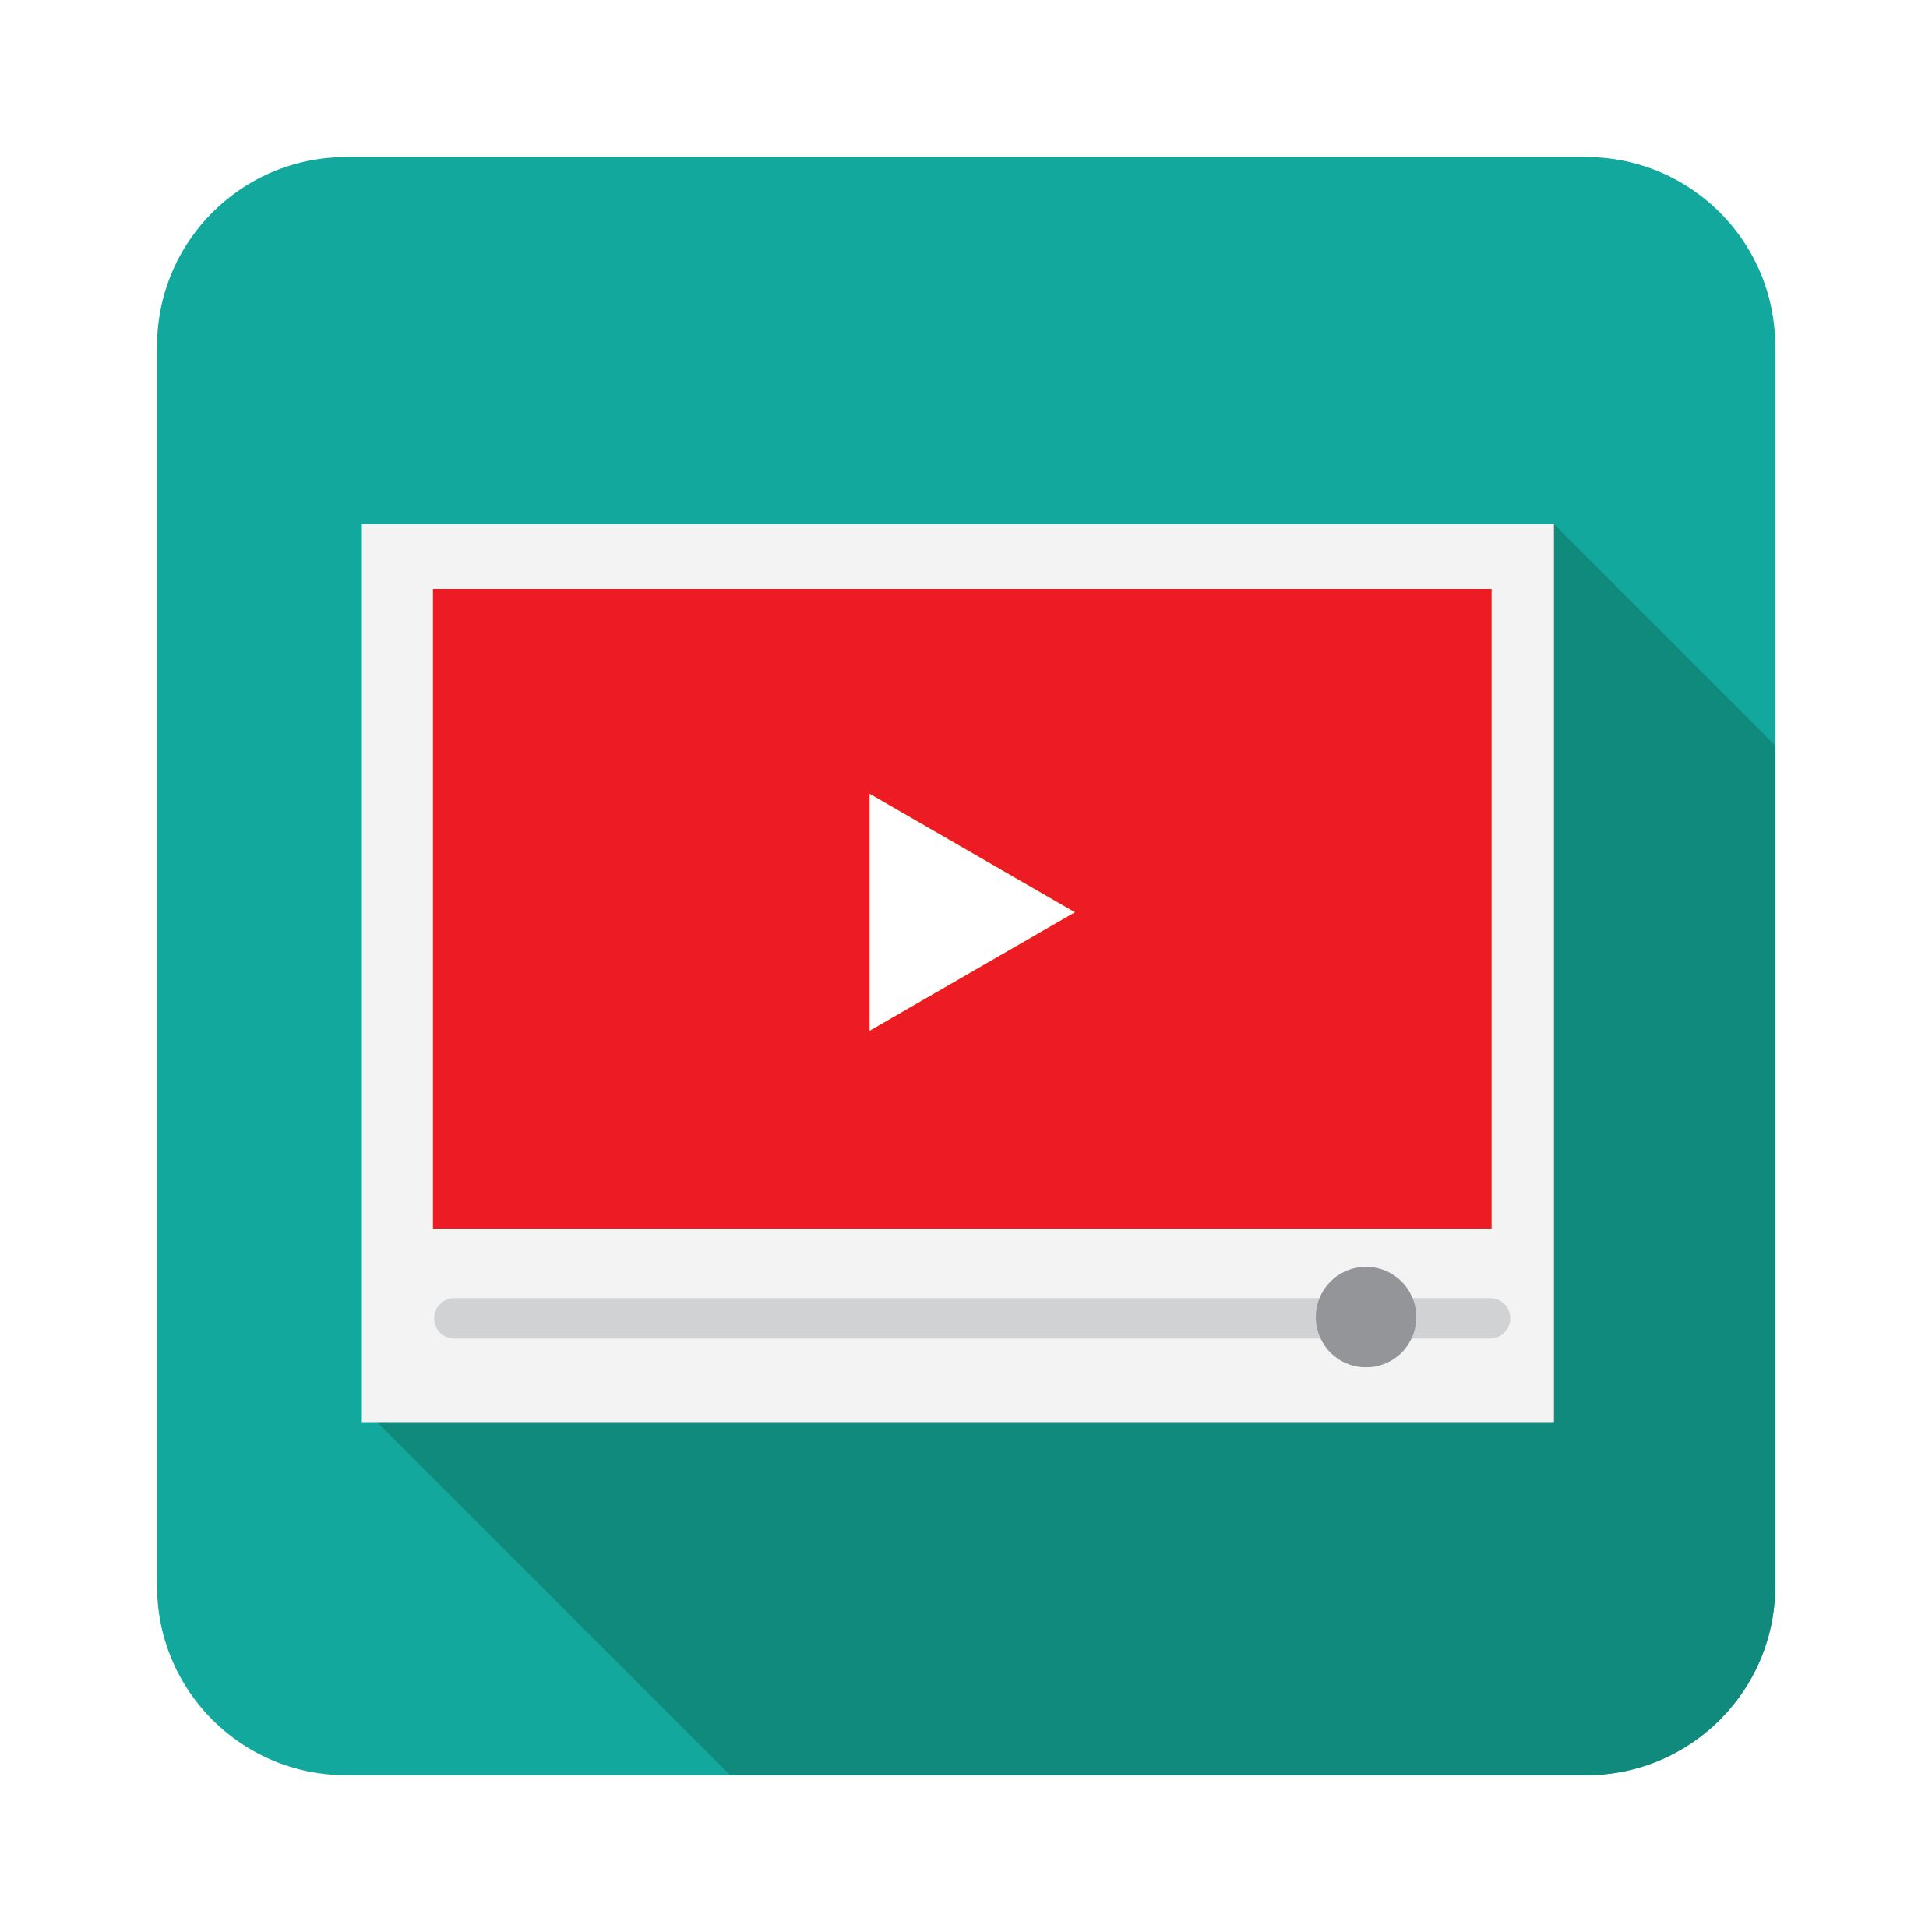 A cartoon image of YouTube videos on a browser.